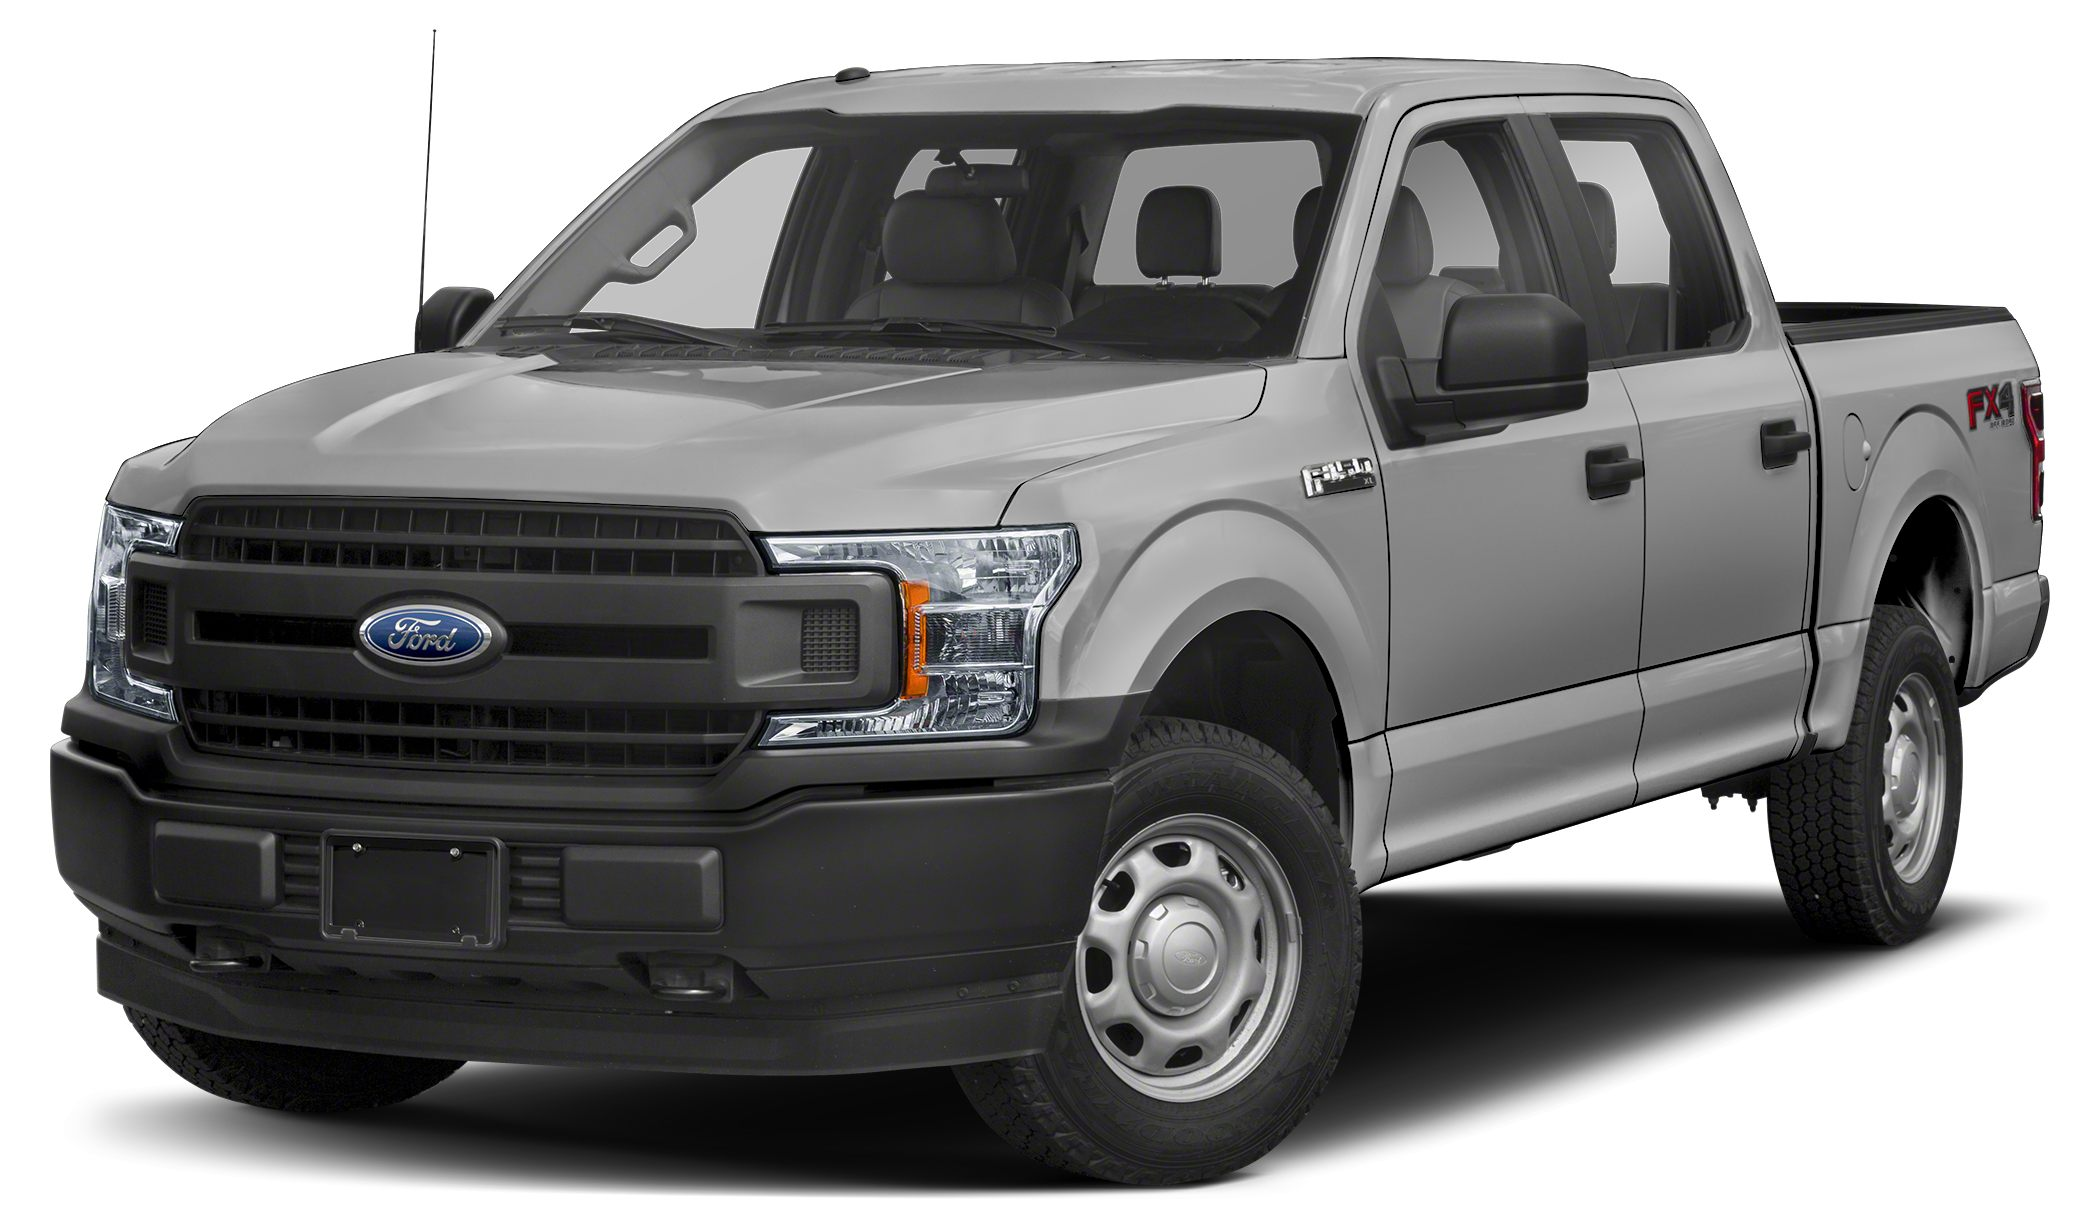 dealers in ocean lifestyle berlin pines every ford salisbury lincoln a for md dealer vehicle